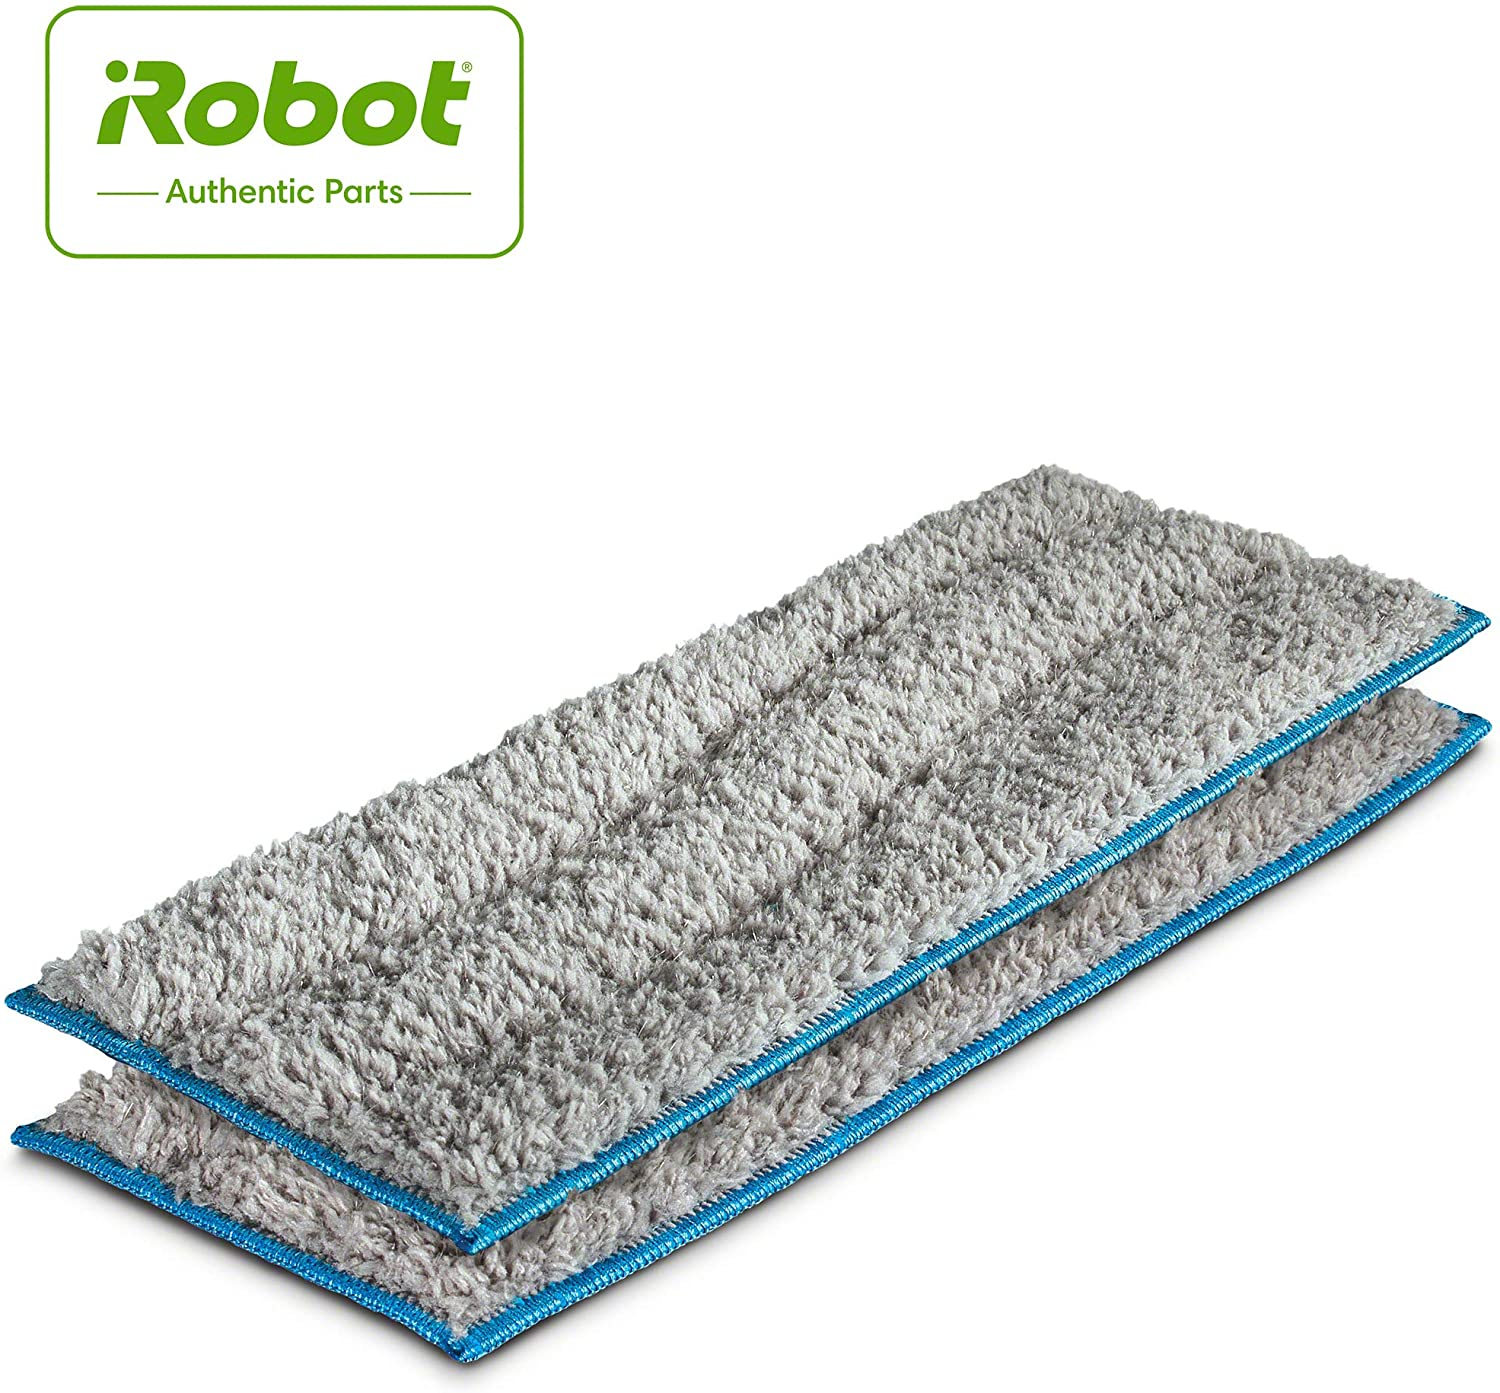 iRobot Authentic Replacement Parts- Braava jet m Series Washable Wet Mopping Pads, (2-Pack)